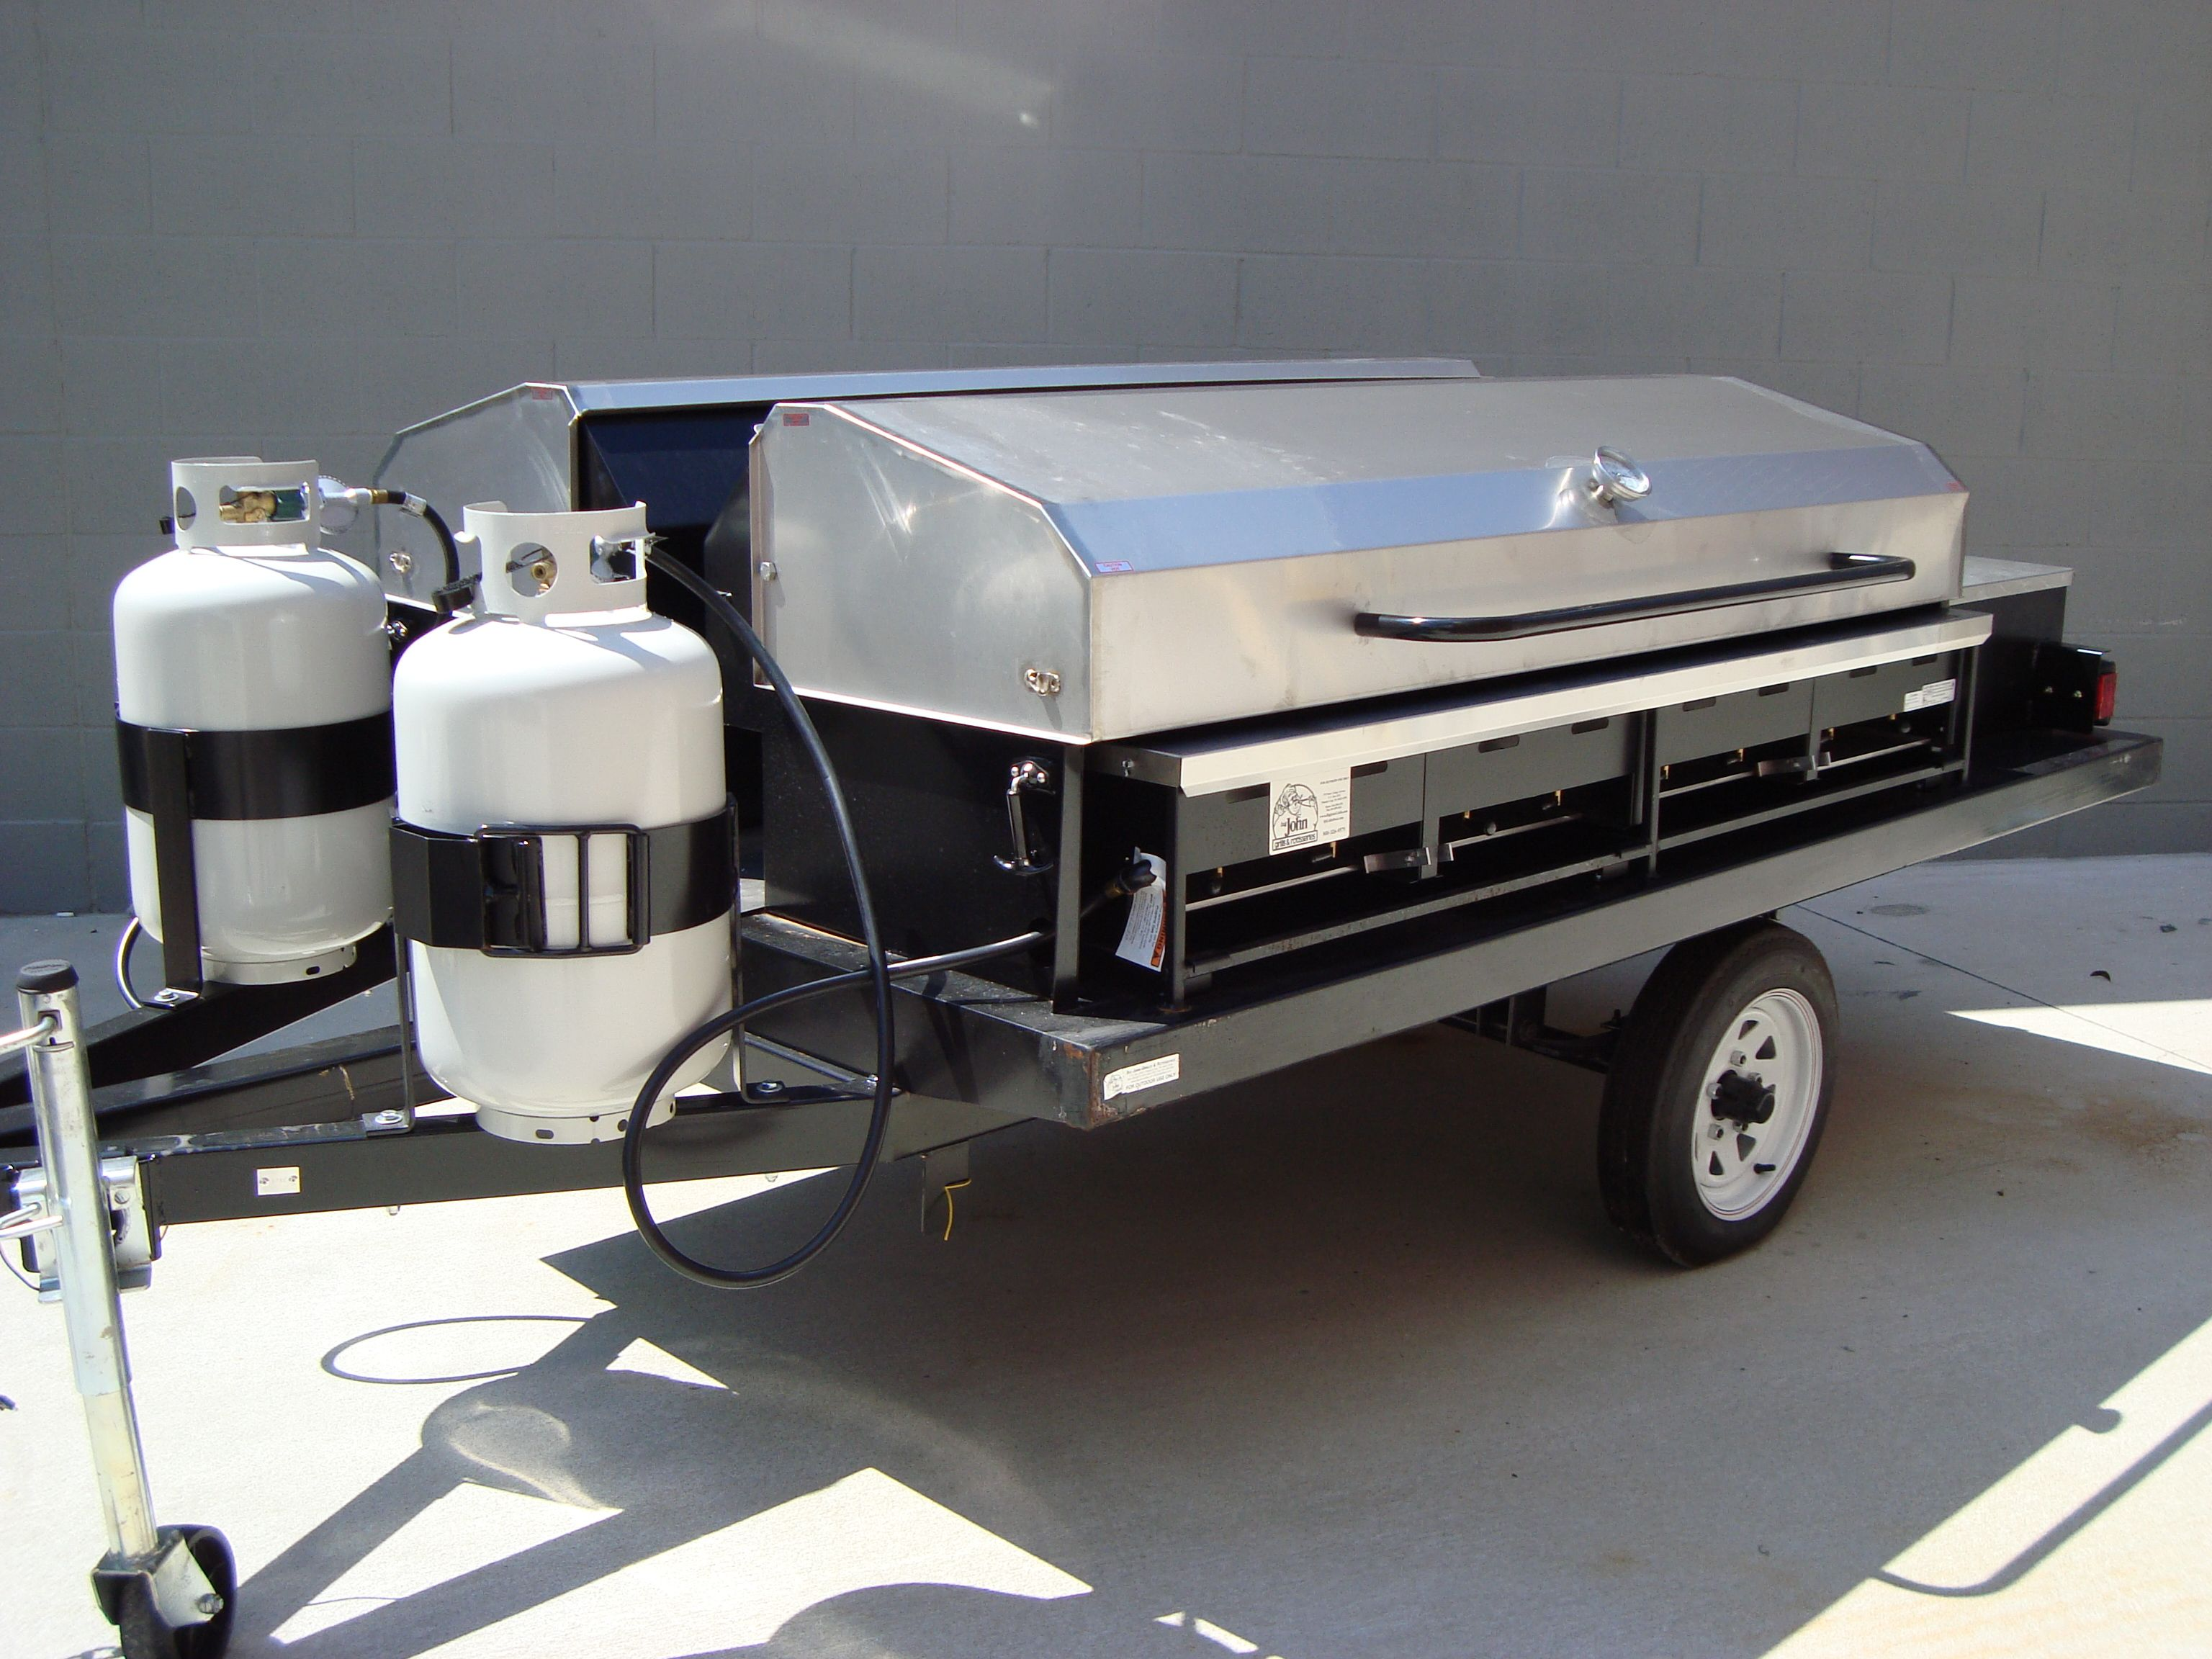 Our Double Sided Propane Trailer Grill Has Enough Power To Serve Large Events For Up To Several Hundred Guests Trailer Grill Bbq Pit Smoker Mobile Coffee Shop